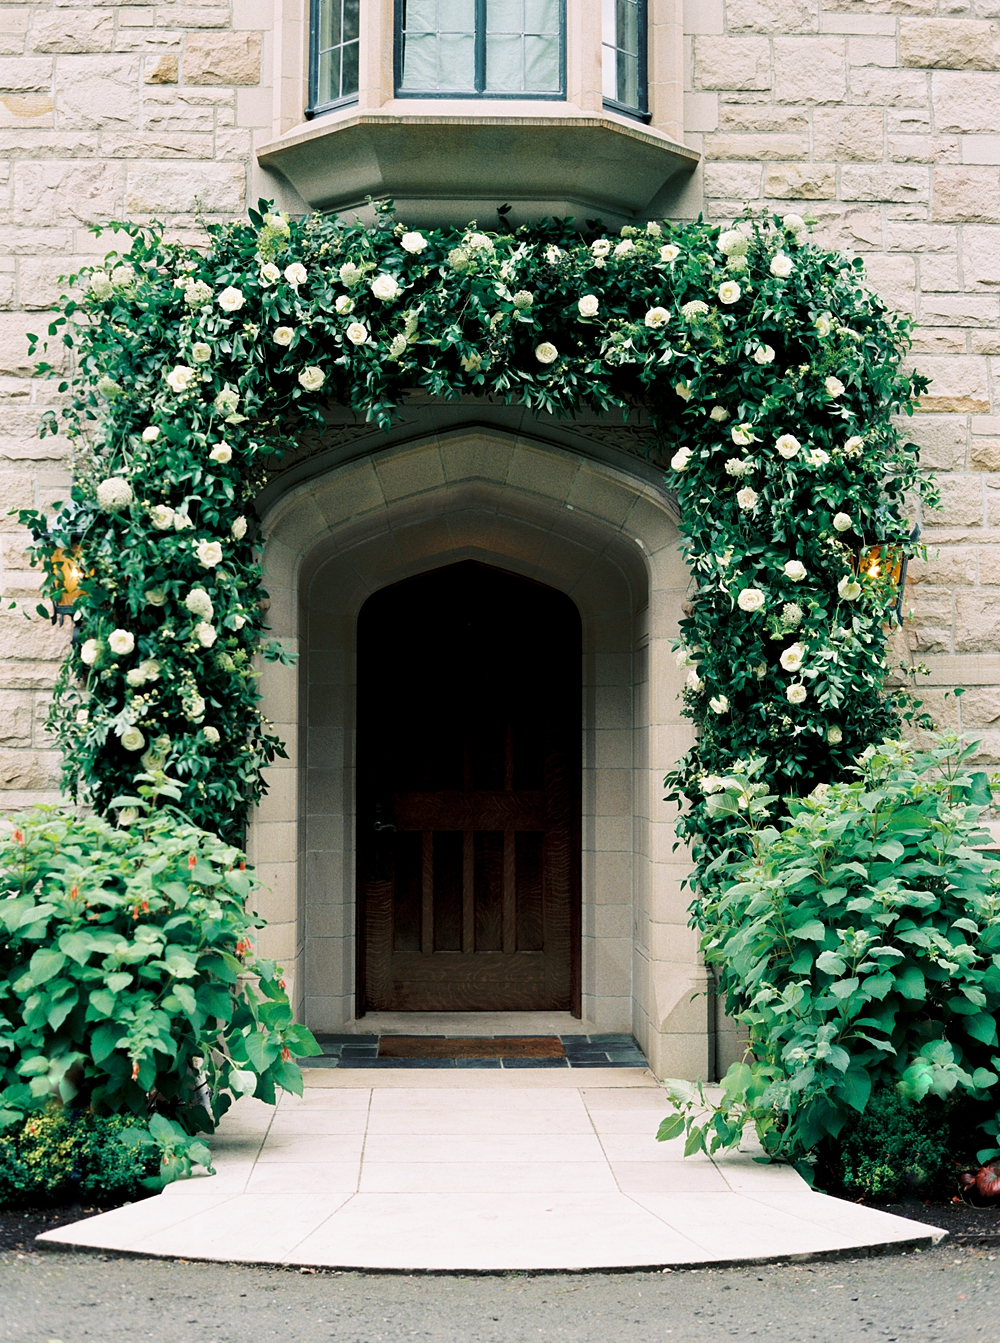 Arch of greenery and white flowers over the front door of the private estate overlooking the puget sound